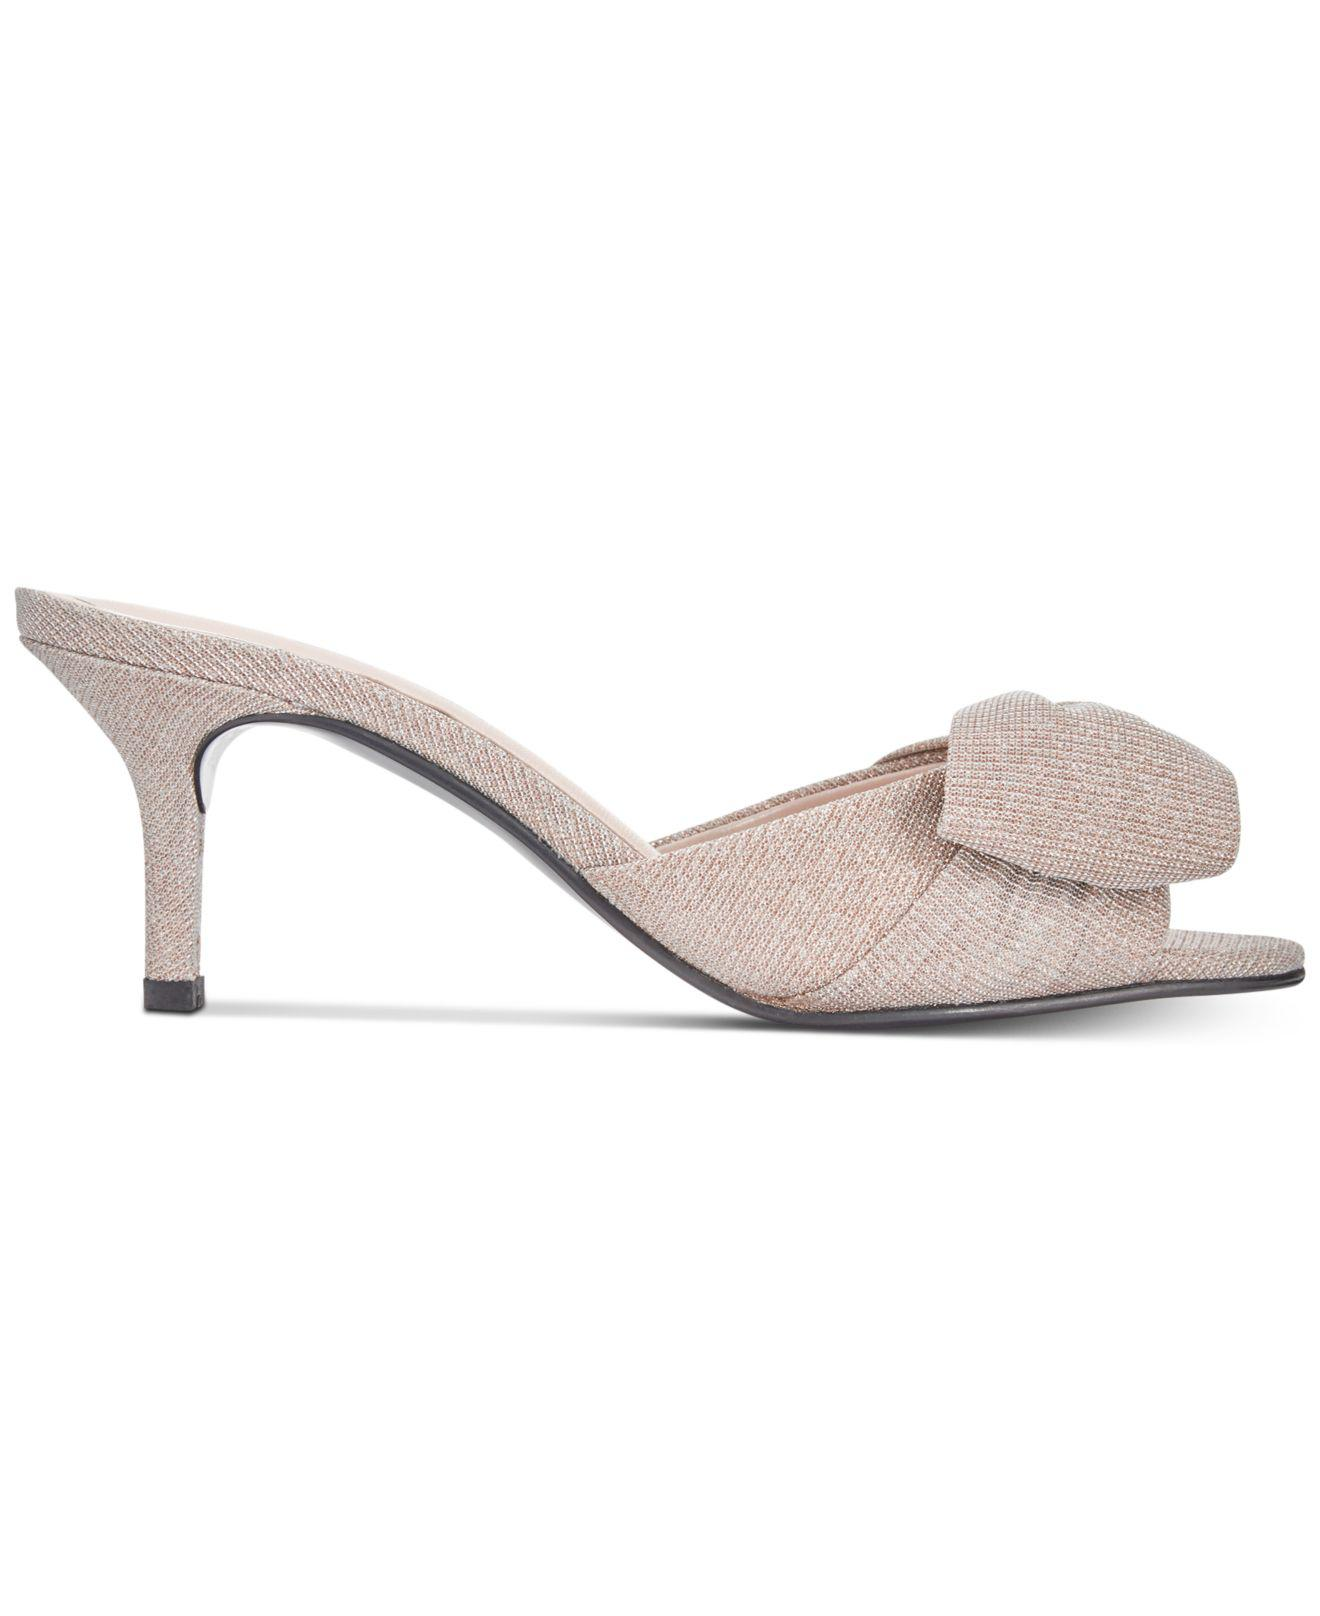 6f4204f6ad3 Caparros Lydia Bow Slide Evening Sandals - Lyst